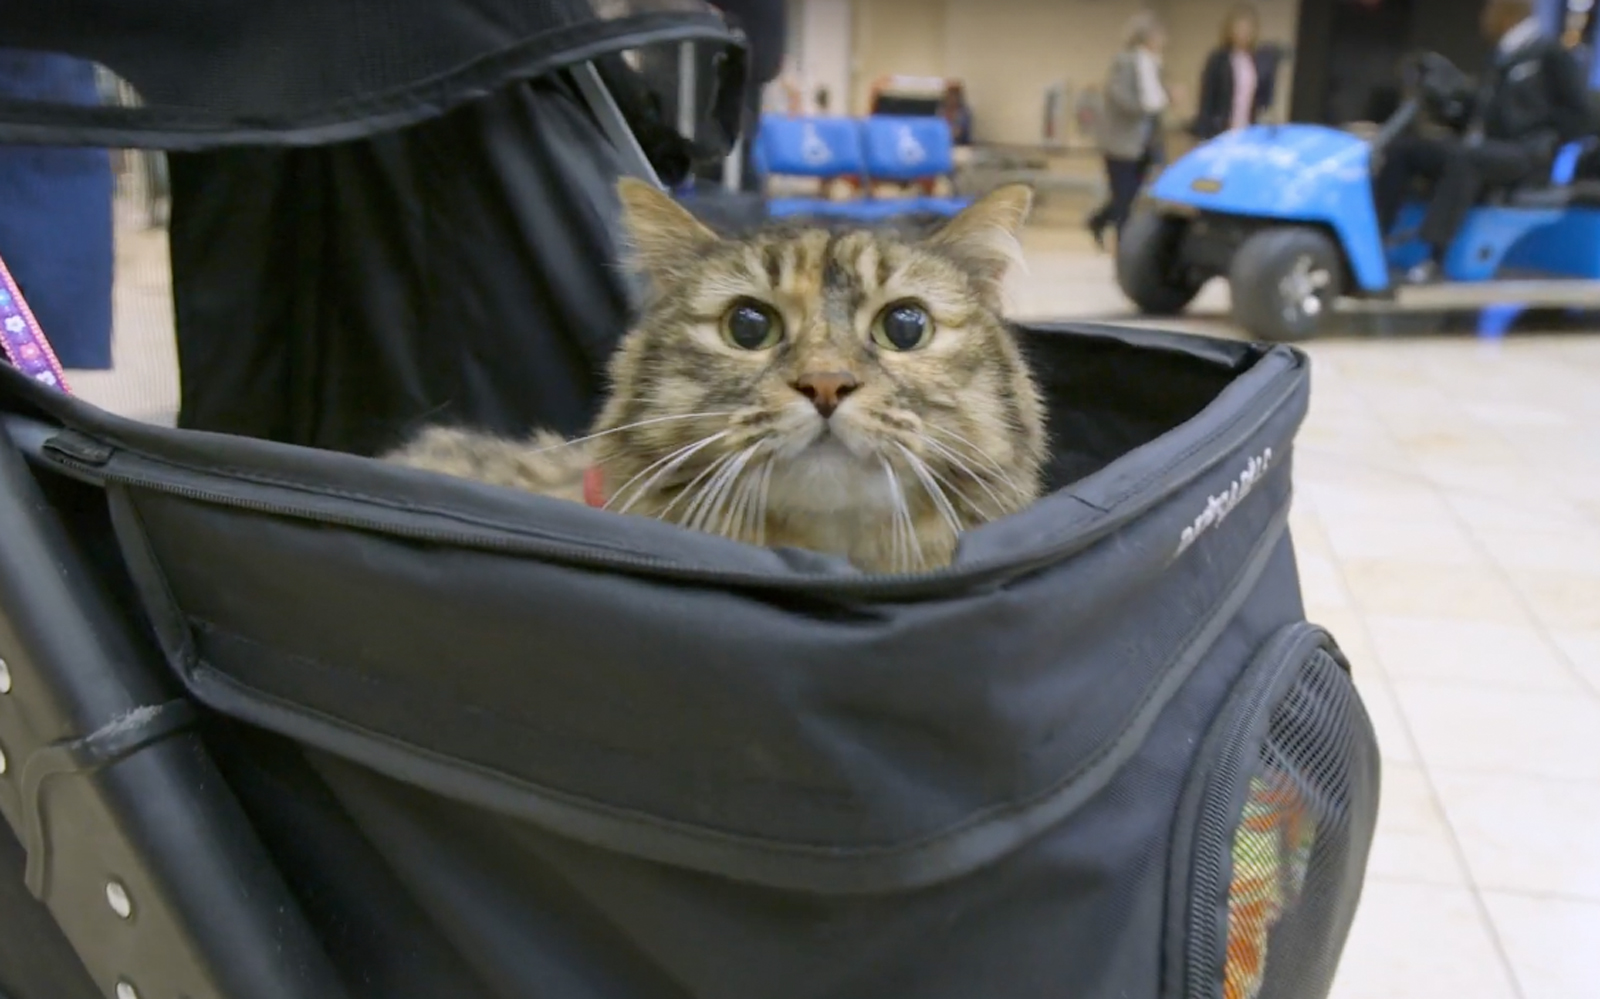 Meet Stitches, the first therapy cat at Minneapolis-St. Paul International Airport